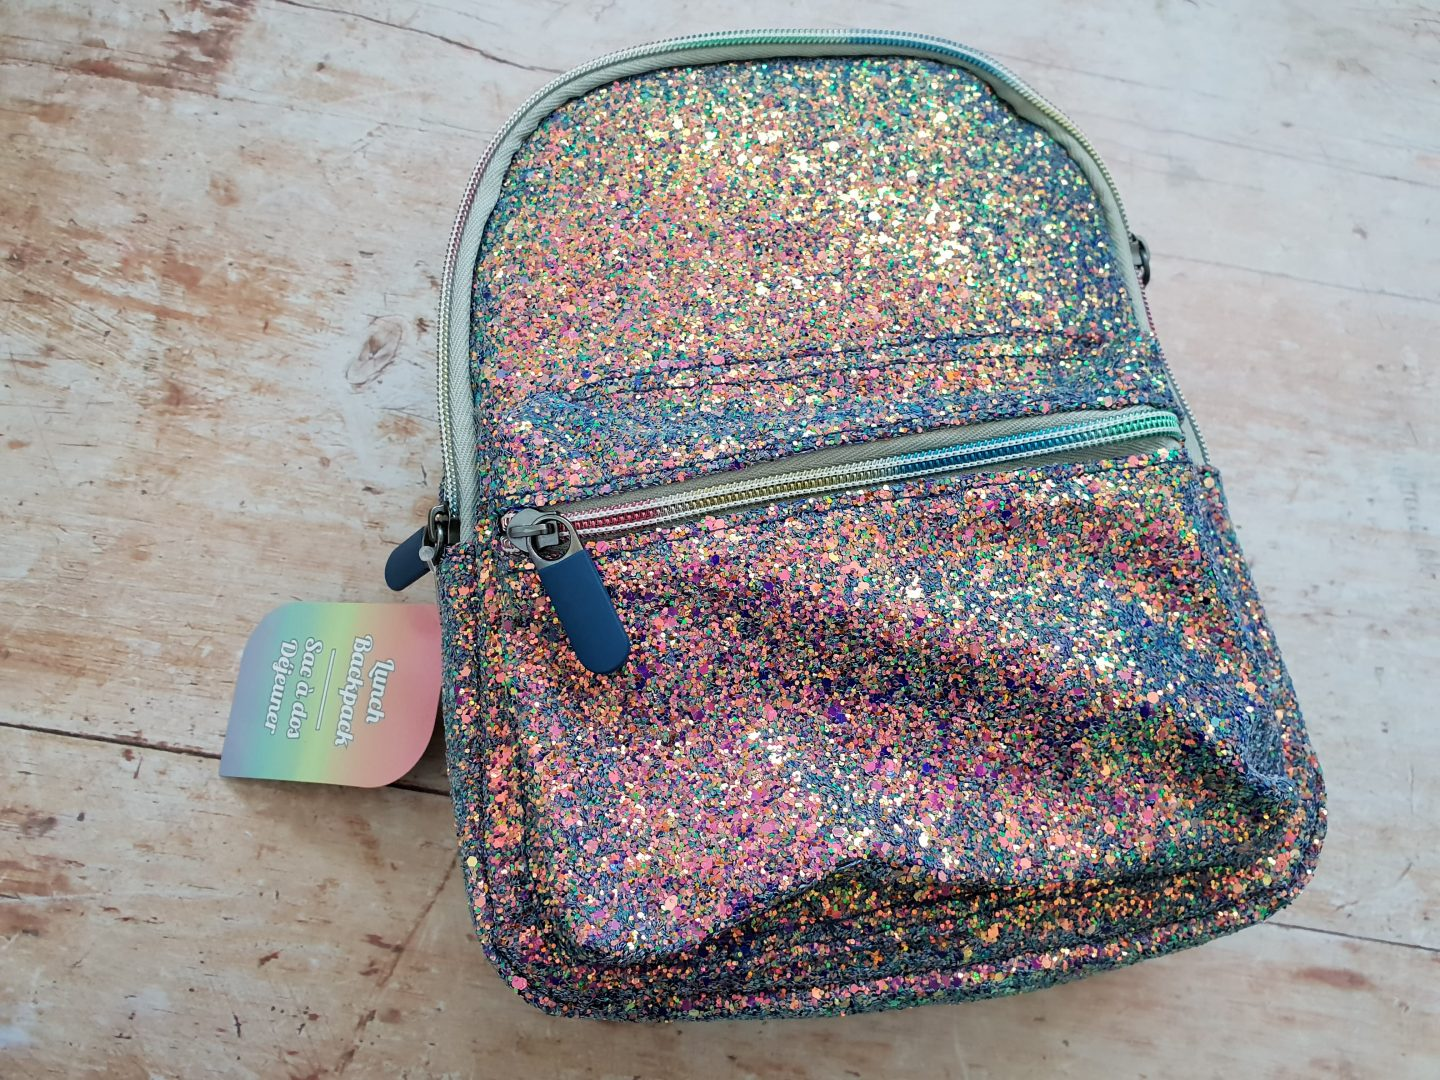 Spearmark rainbow glittery lunch backpack